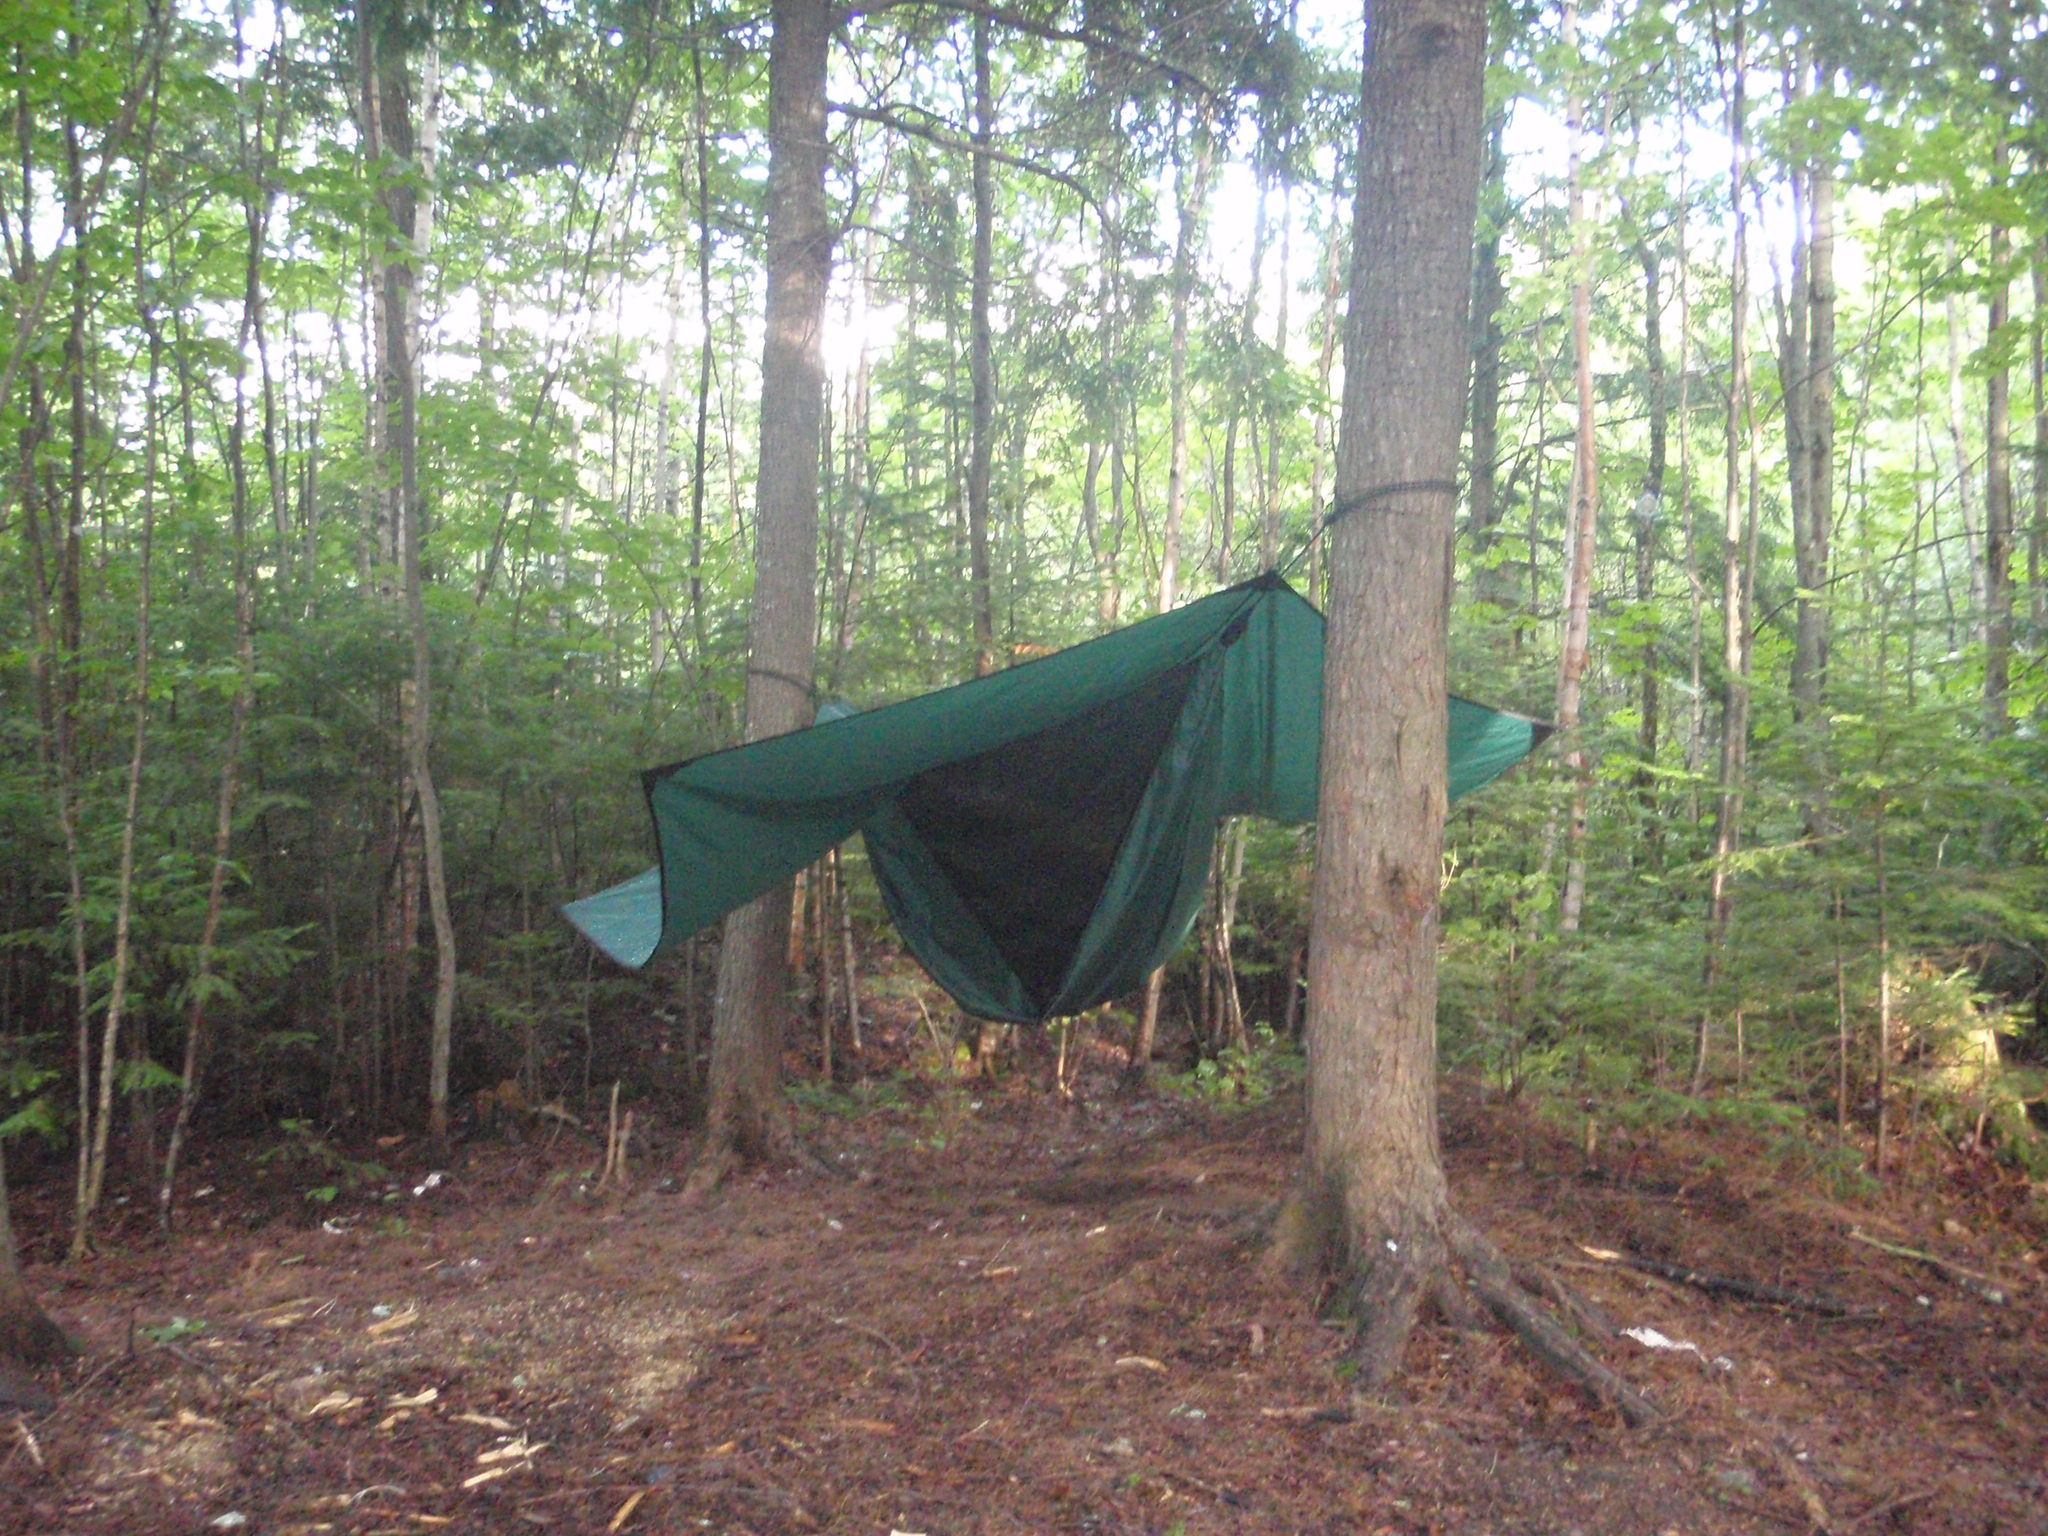 expedition classic hennessey outdoors asp hammocks hennessy tamarack pbscproduct hammock